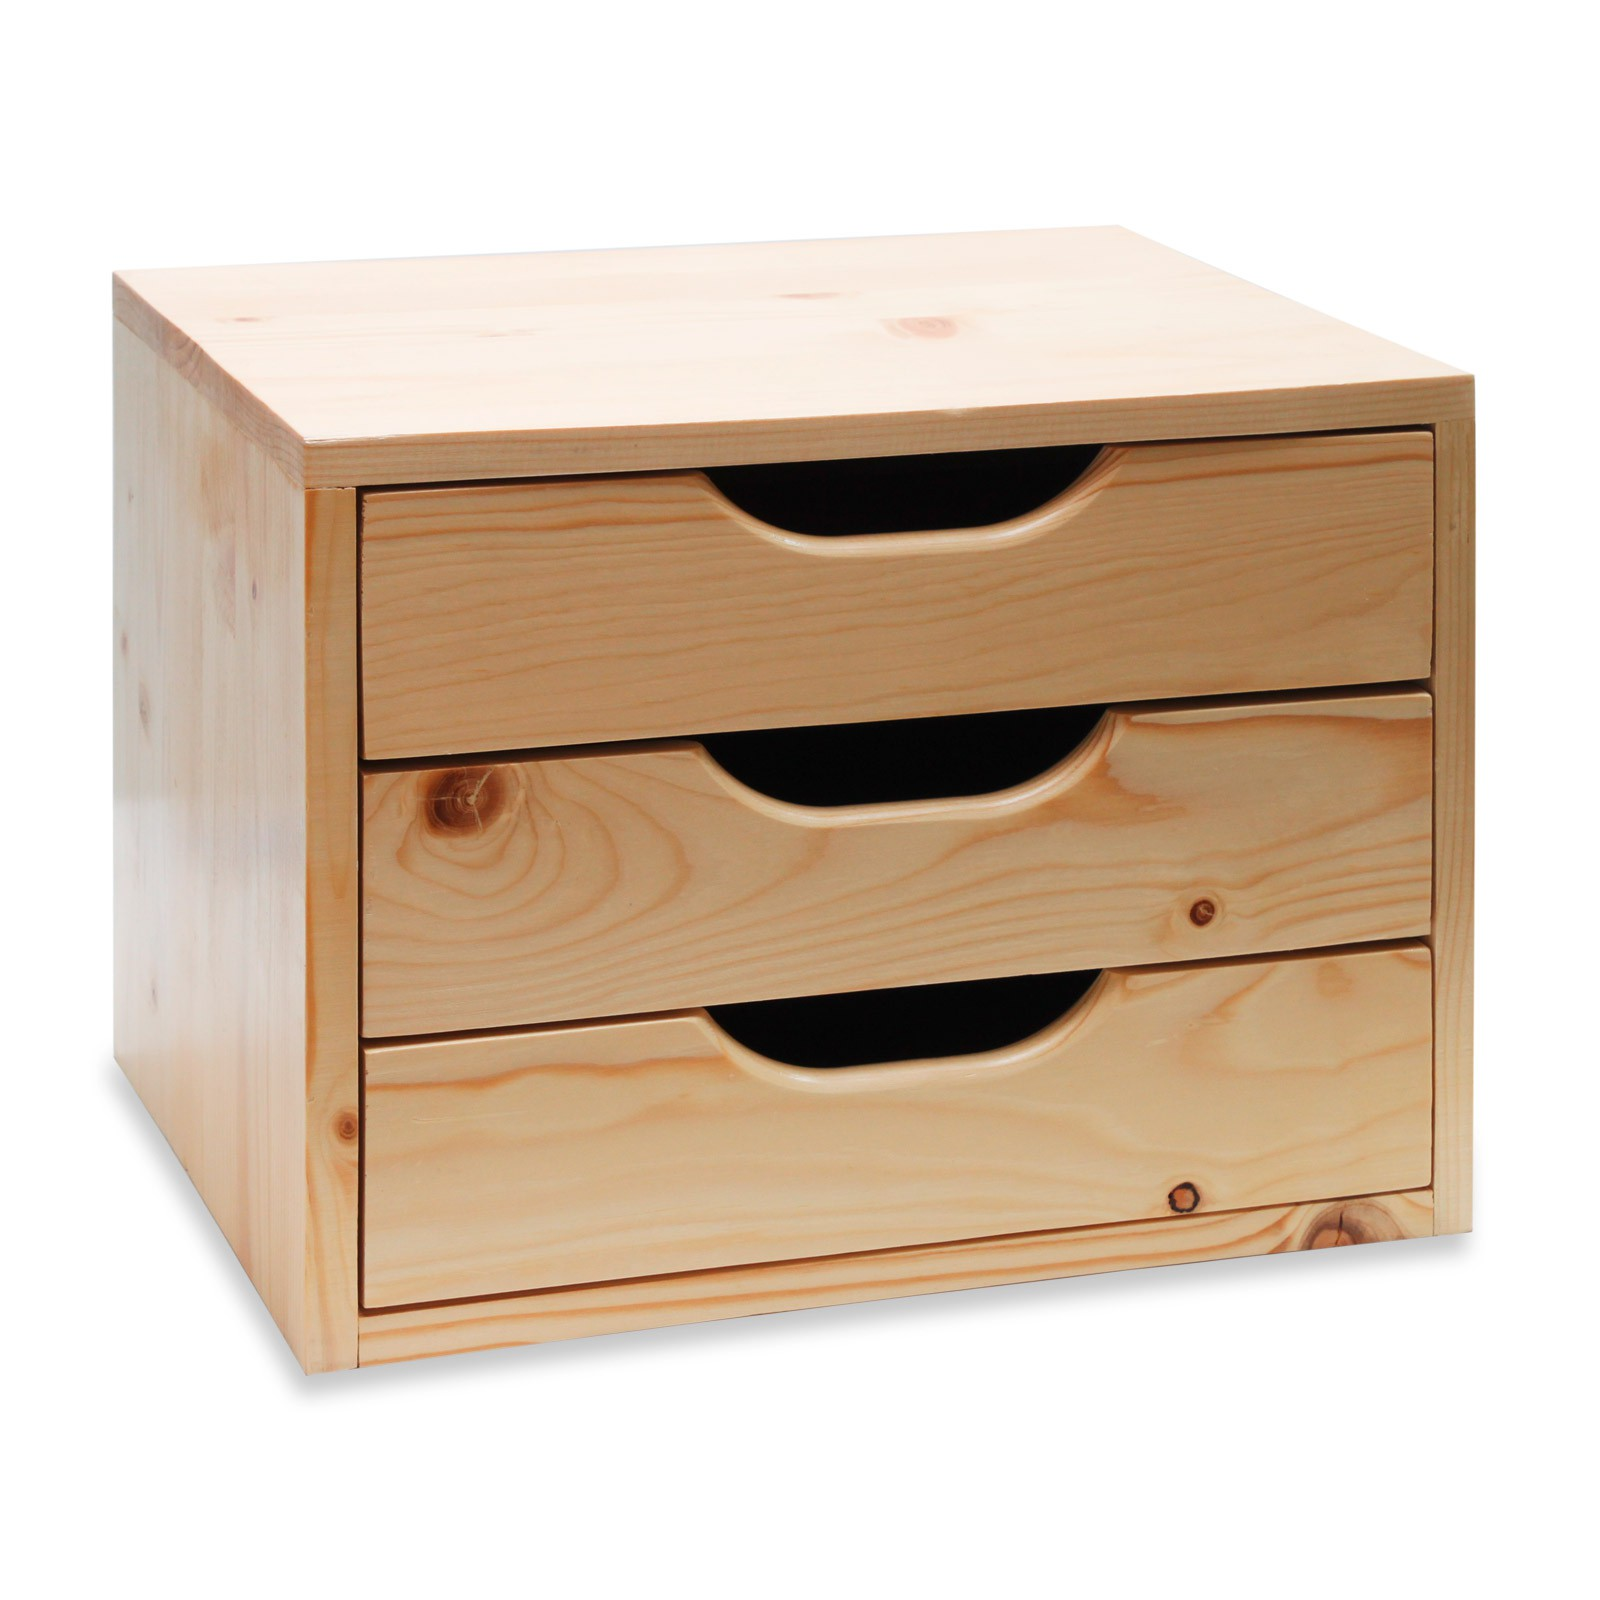 holz schubladenbox schubladen ablagebox holzkiste box 40x30x31cm 40617 ebay. Black Bedroom Furniture Sets. Home Design Ideas